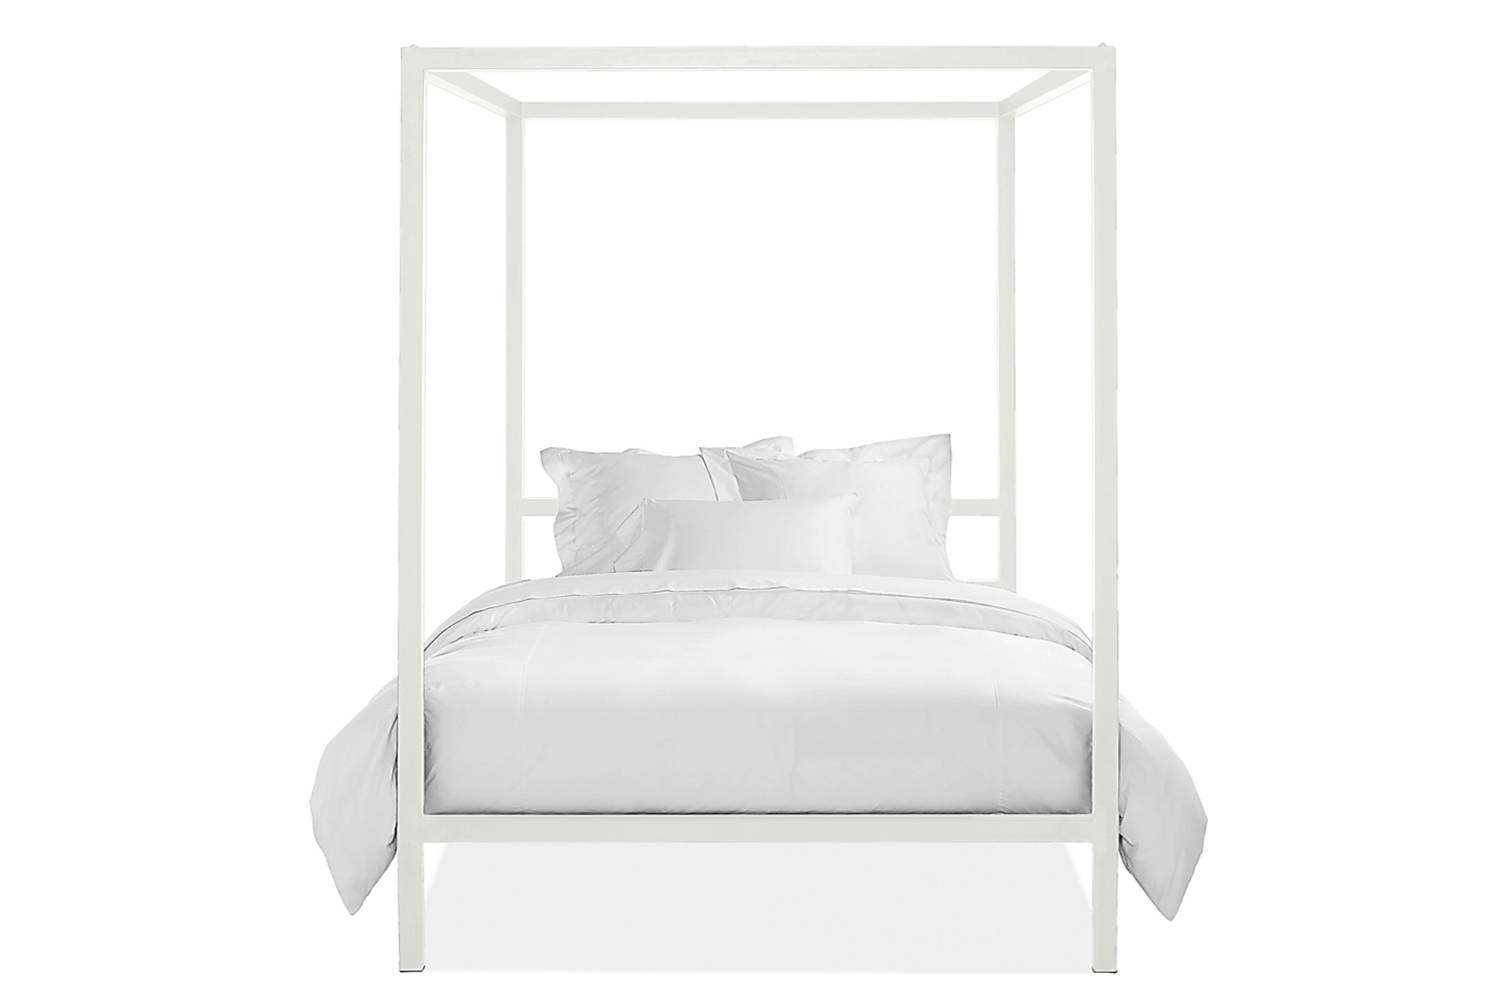 From Room & Board, the Architecture Queen Bed, shown in white, is $src=